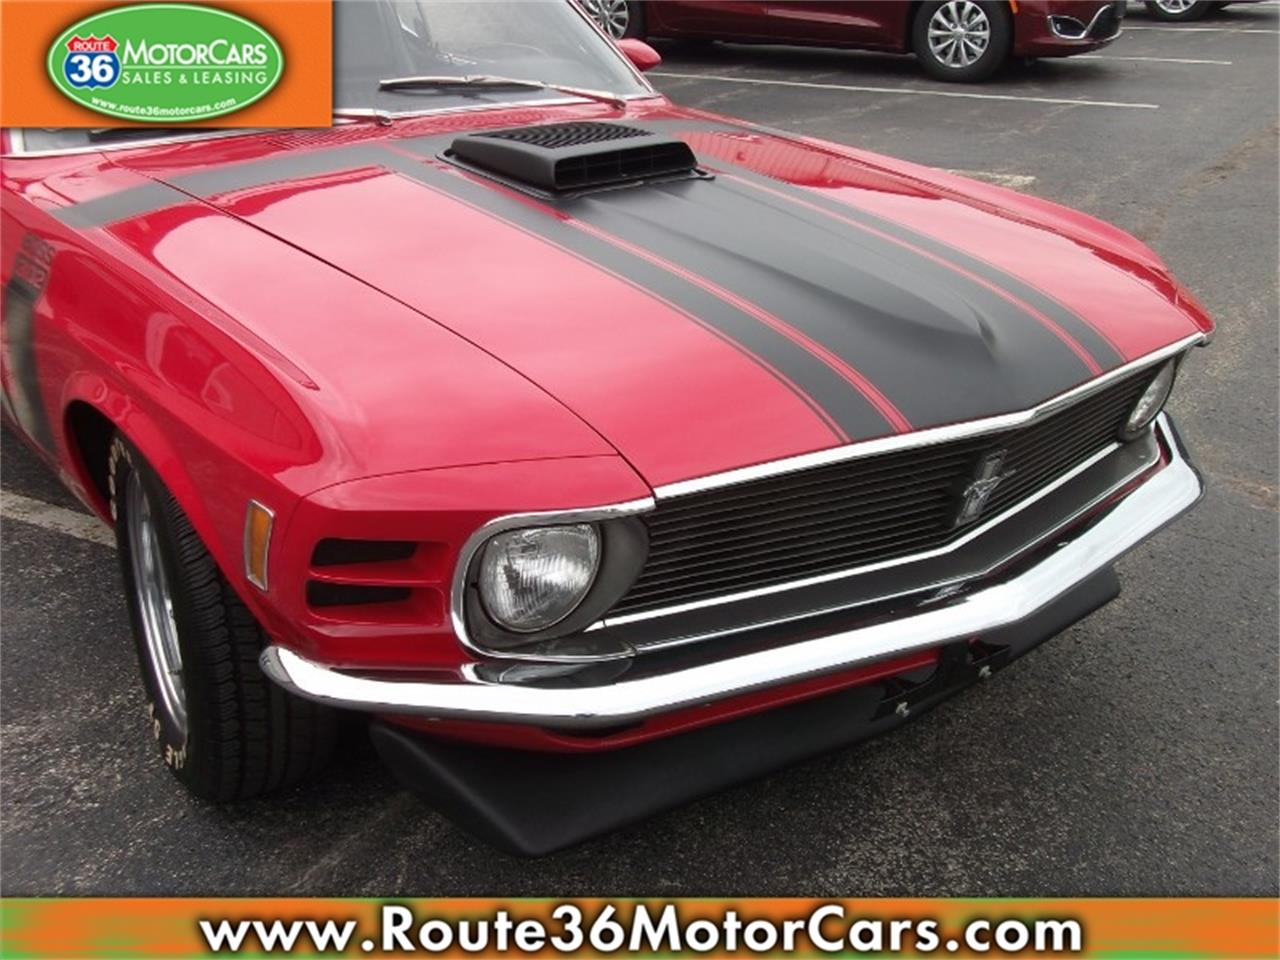 Large Picture of Classic 1970 Mustang located in Dublin Ohio - $69,975.00 - PBL3